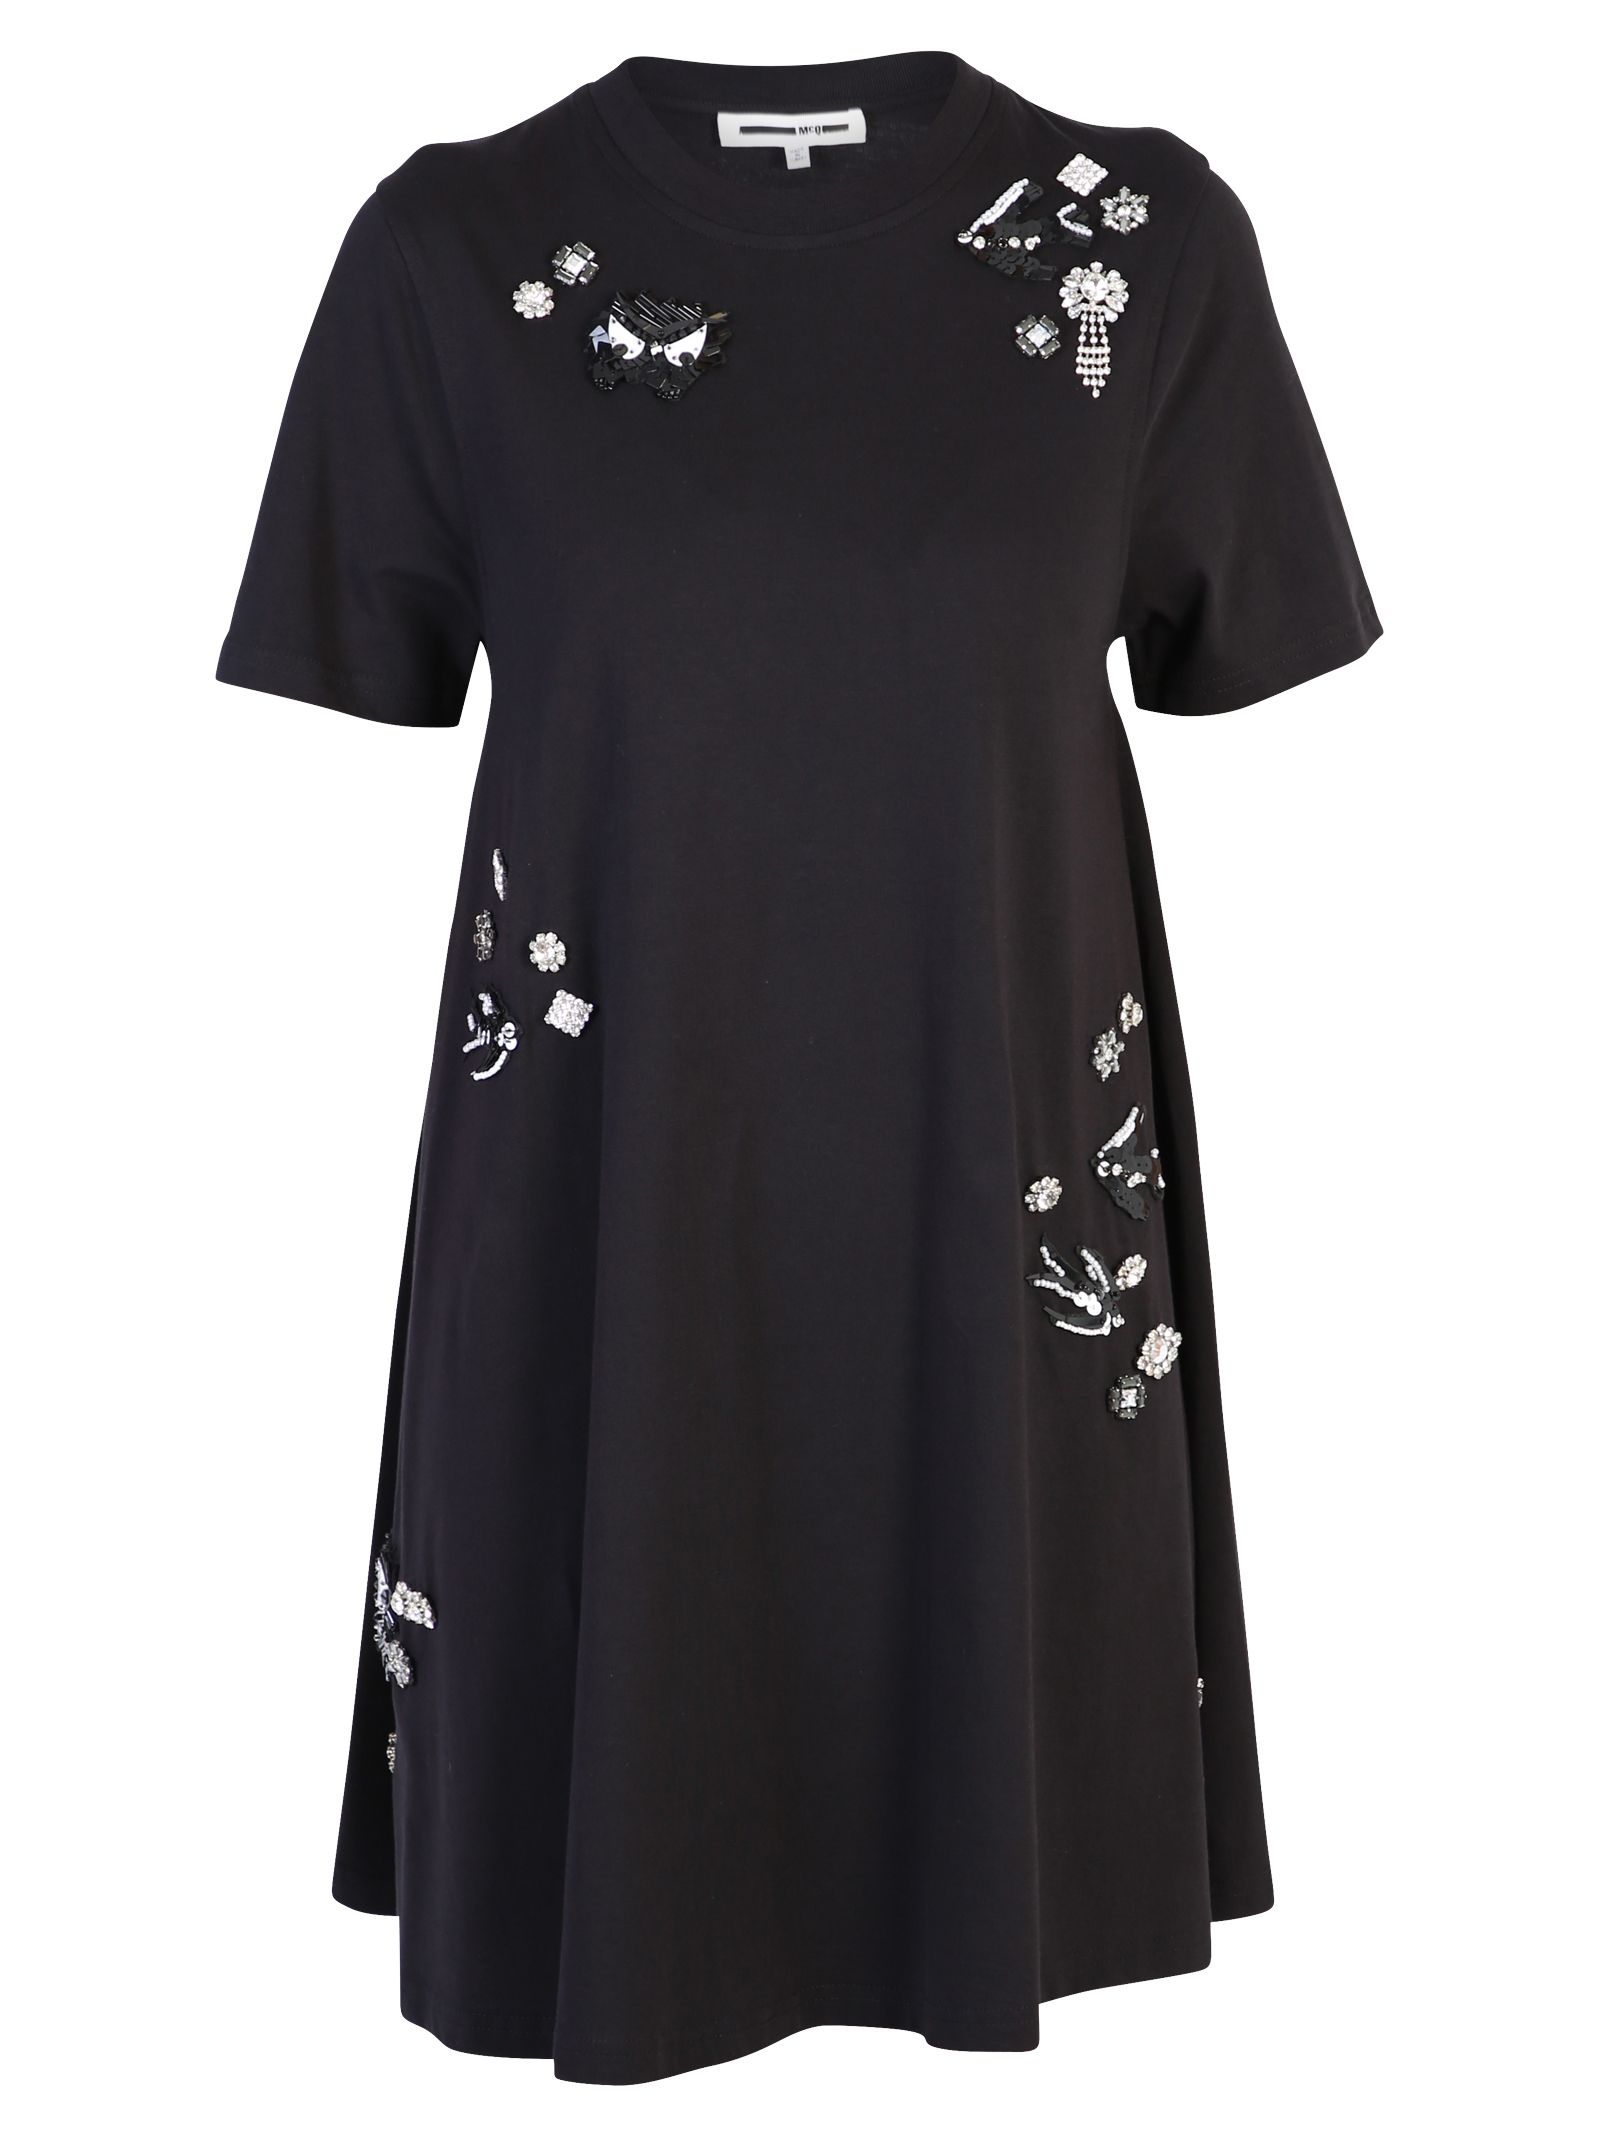 Mcq By Alexander Mcqueen Dresses BLACK SHINY DETAILED DRESS